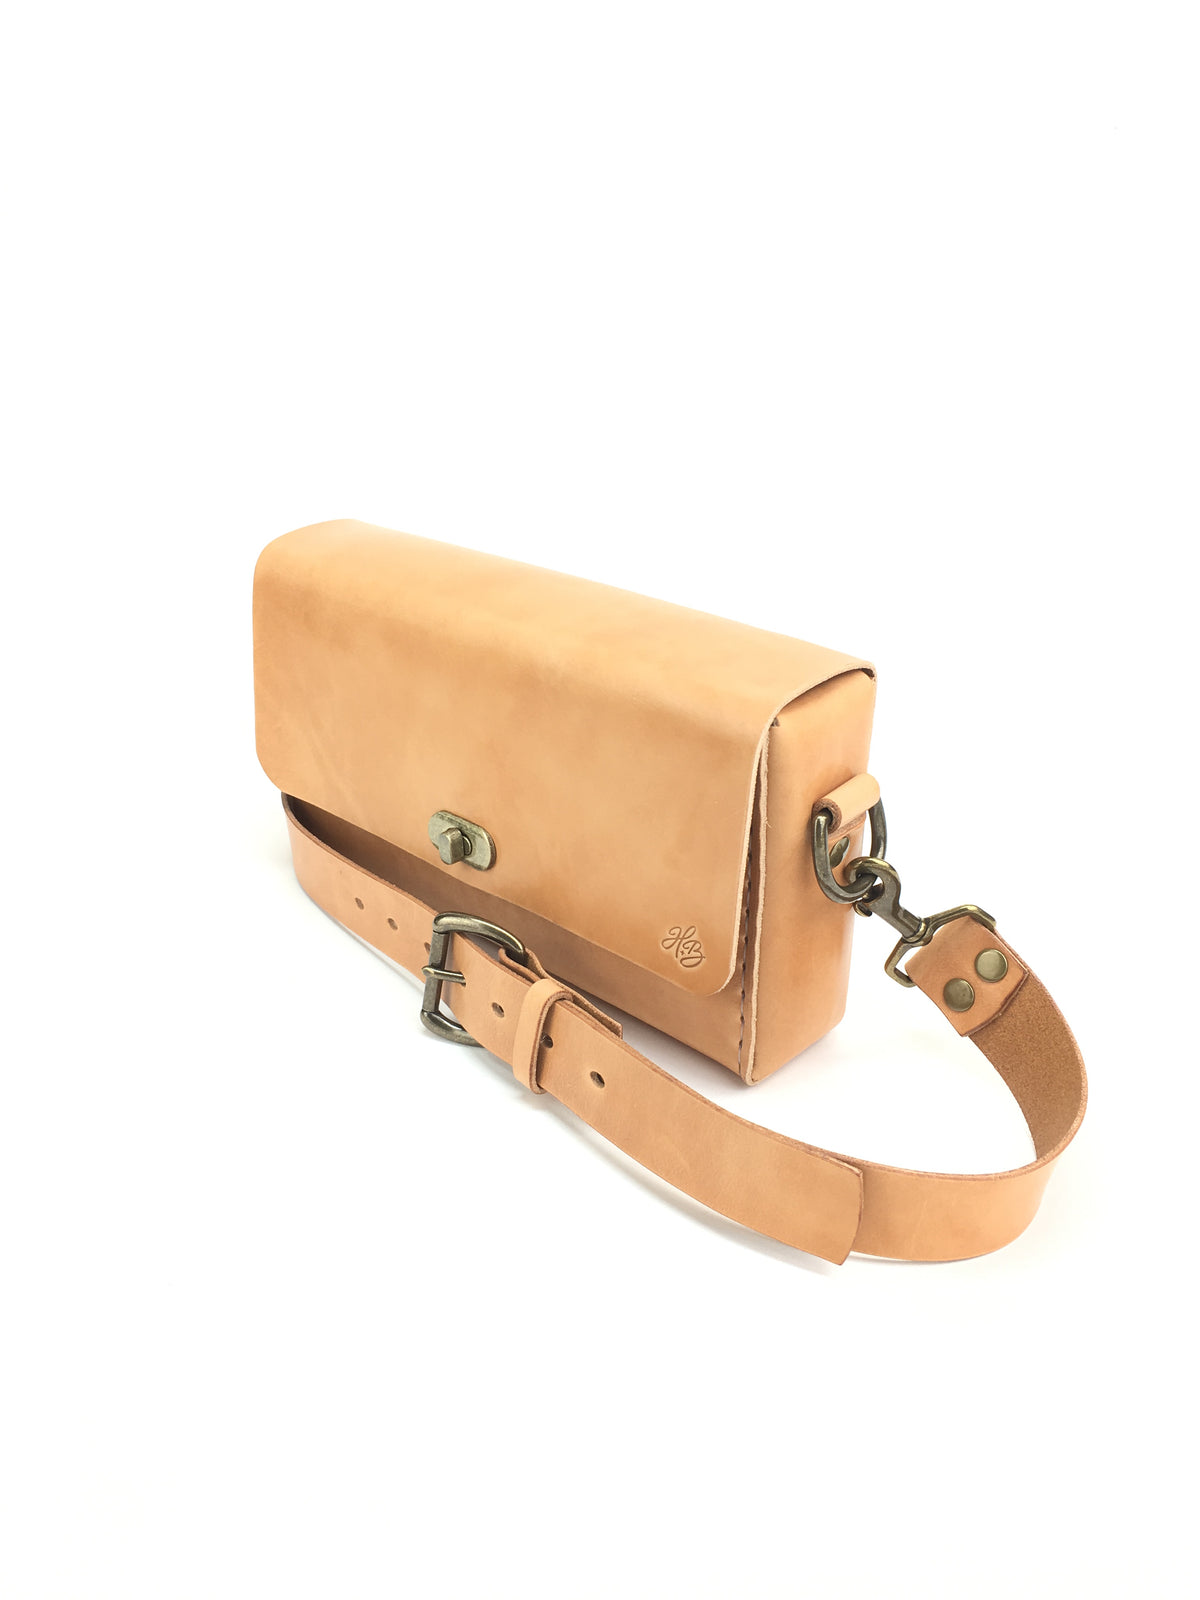 H+B CROSSBODY | RUSSET LEATHER CROSSBODY PURSE